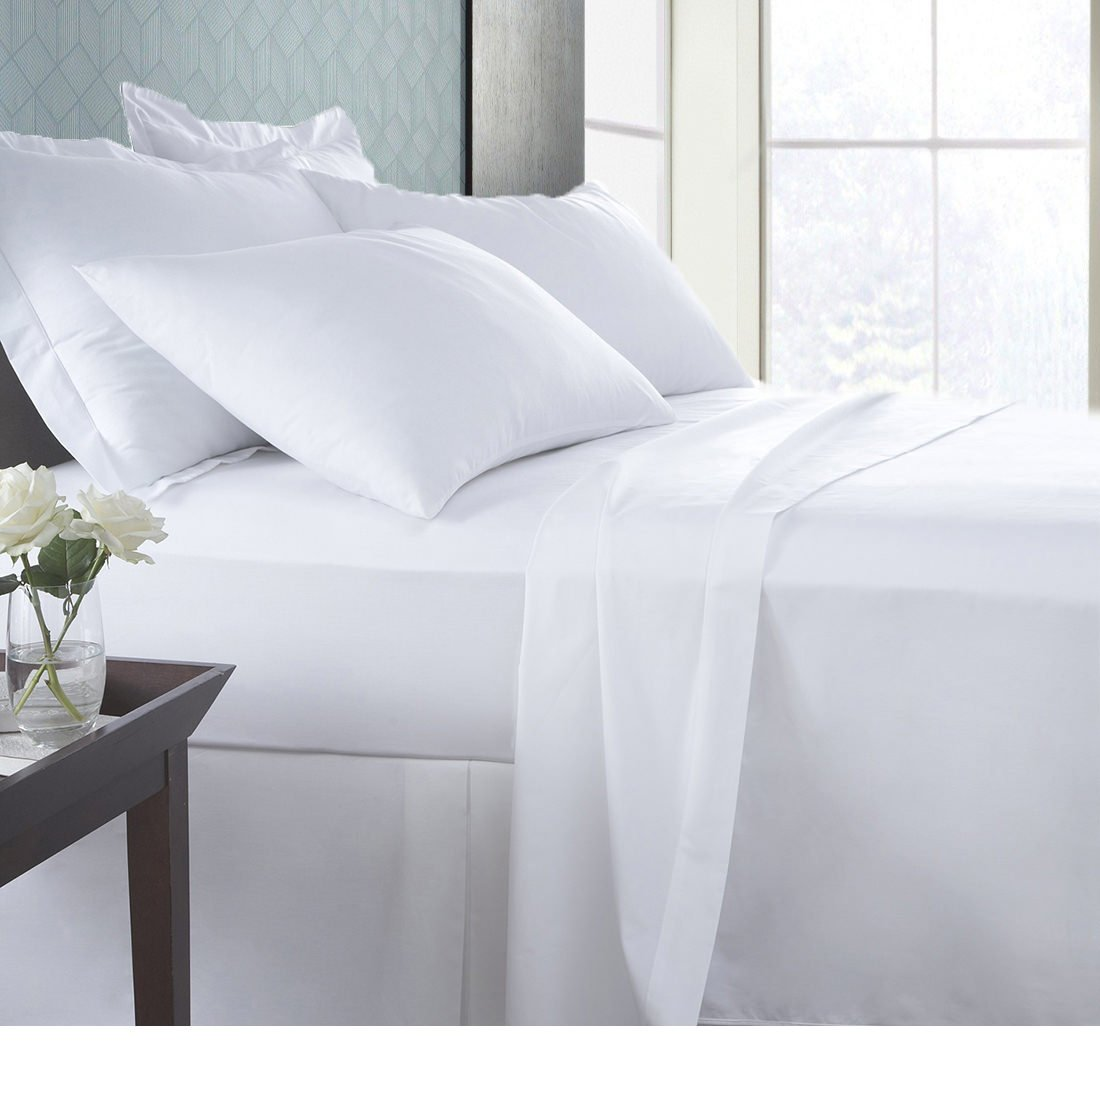 SPA Beddings Presents 6 PC Sheet Set 100% Egyptian cotton 600 Thread Count Premium Sheet Set, Luxurious Feel Italian Finish Comfort Sheet Set Comes with 19'' Deep Pocket King White